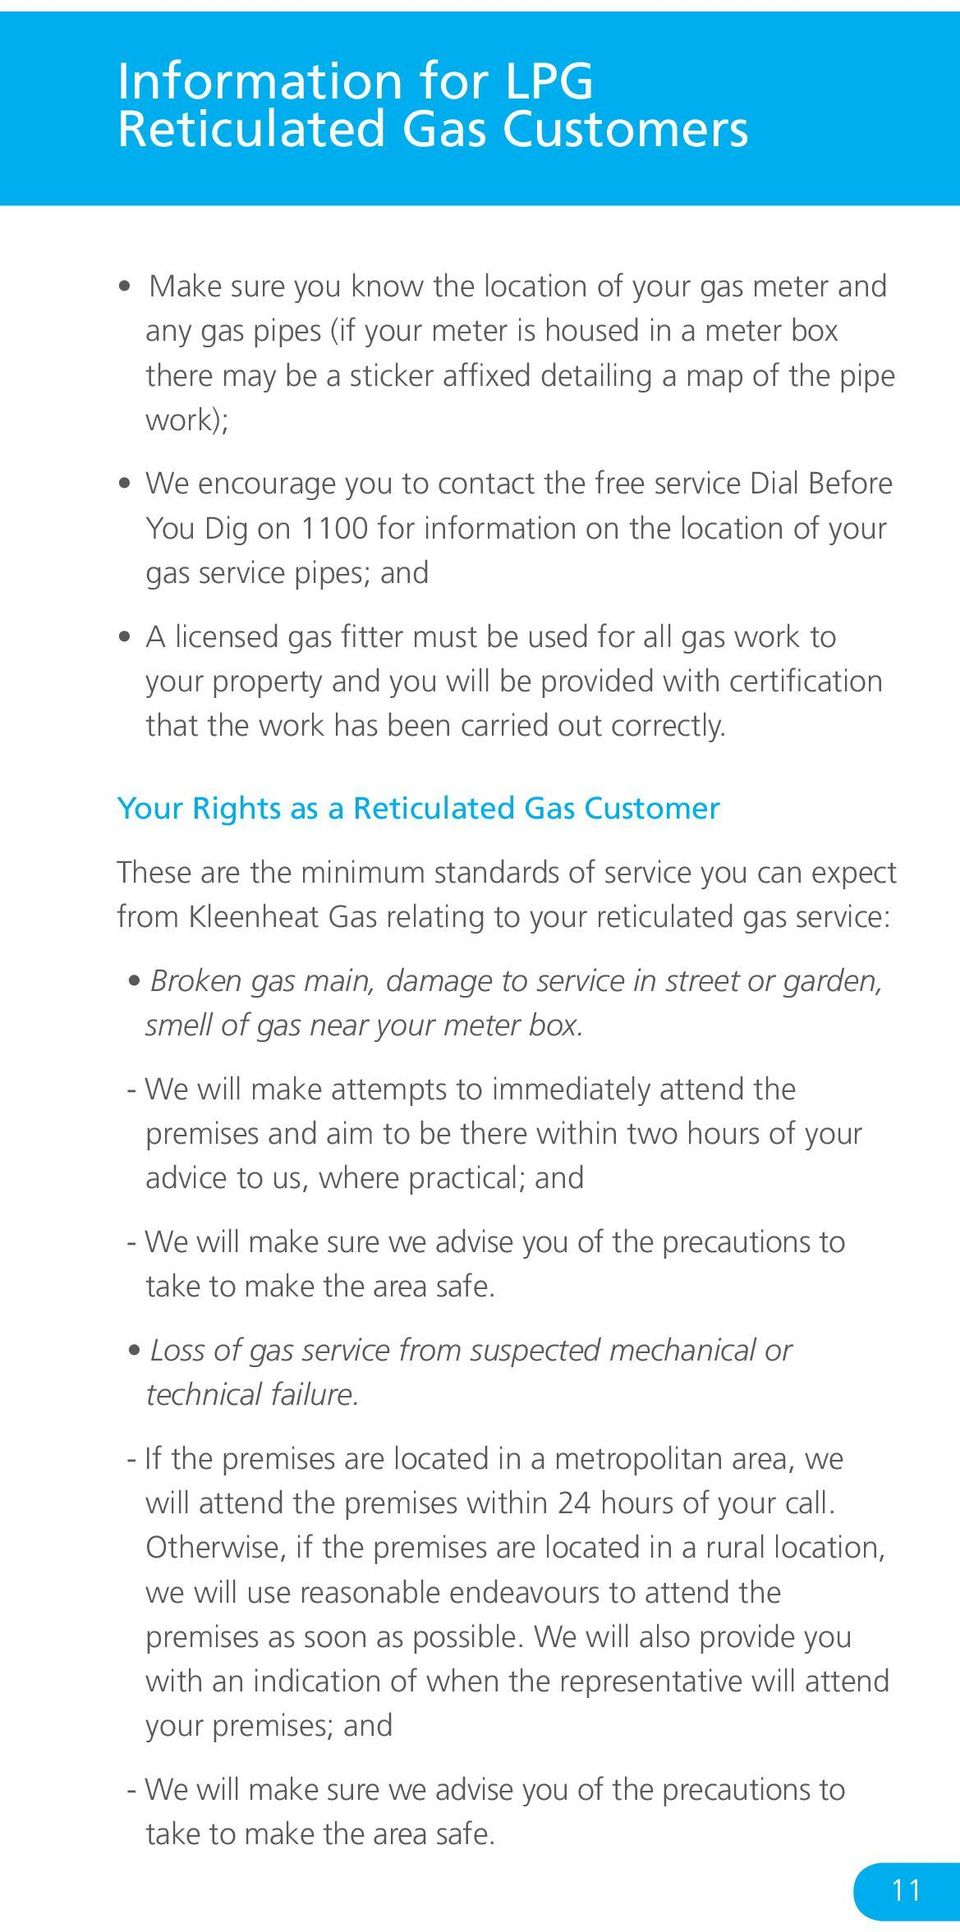 all gas work to your property and you will be provided with certification that the work has been carried out correctly.